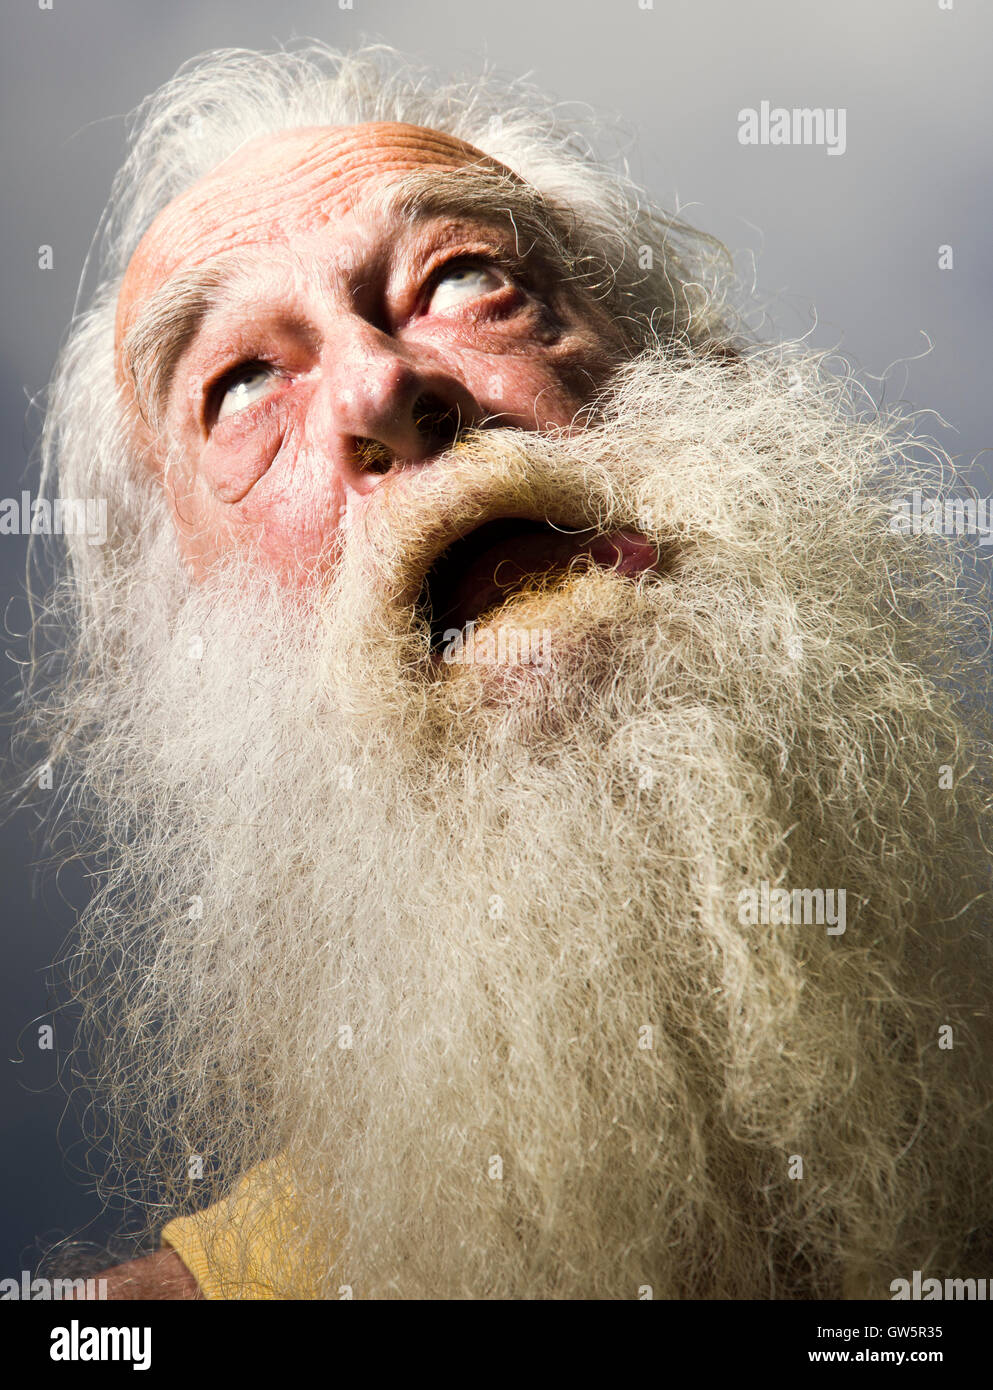 Old man with white beard open mouthed looking skywards. - Stock Image